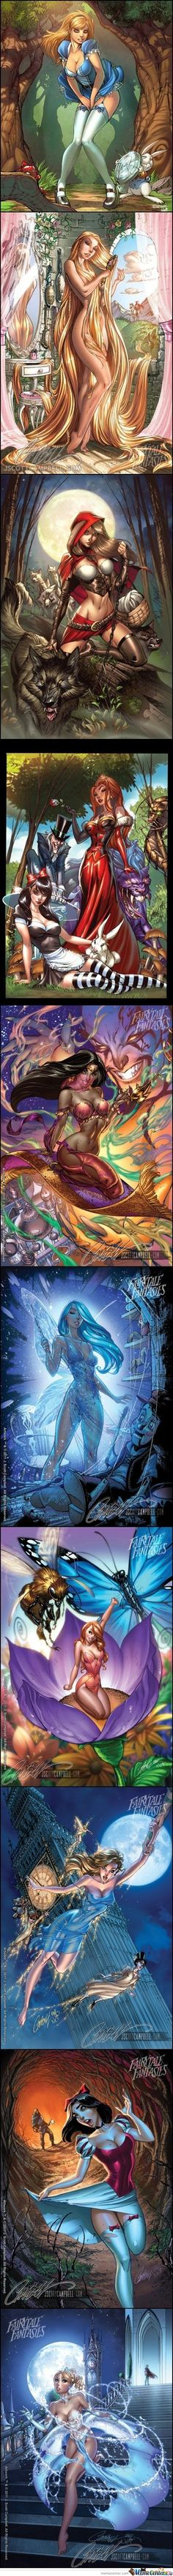 Disney fairy tales by J Scott Campbell